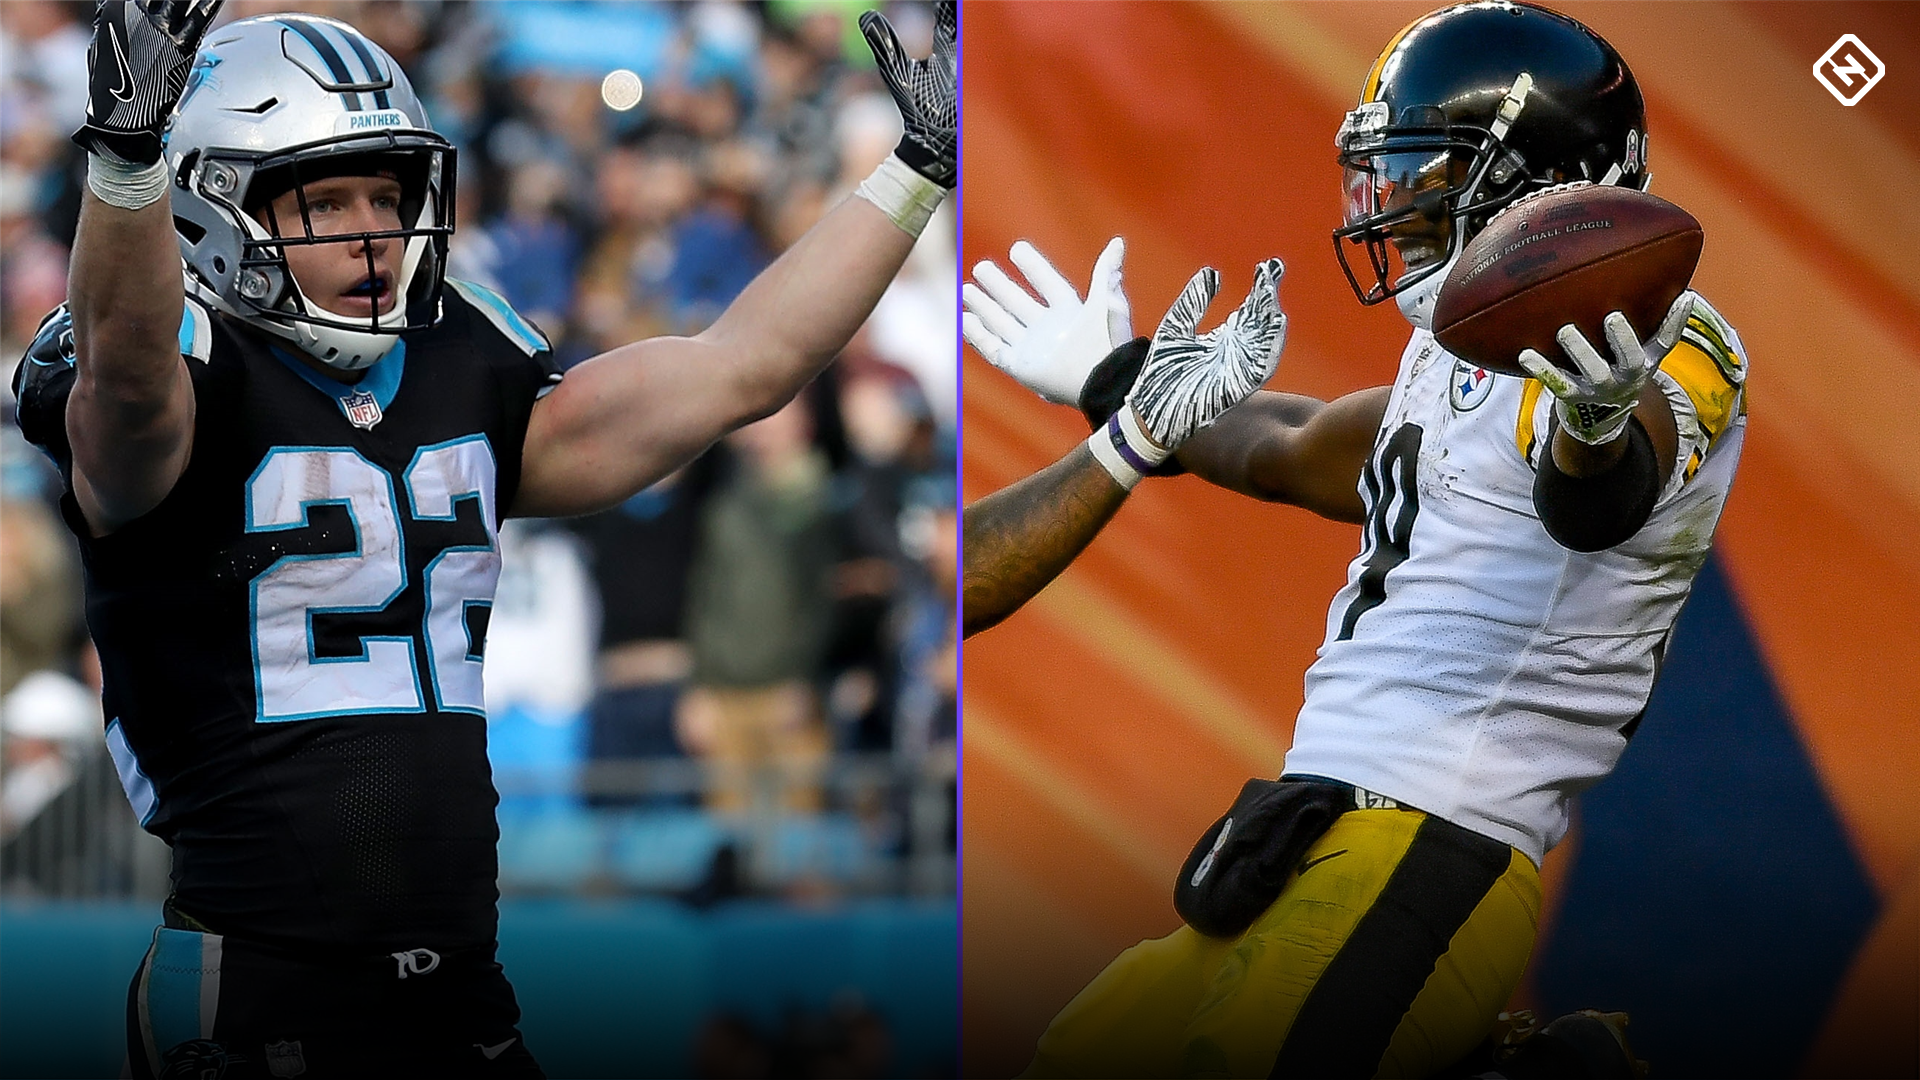 Week 12 Perfect DraftKings Lineup and Week 13 NFL DFS tips